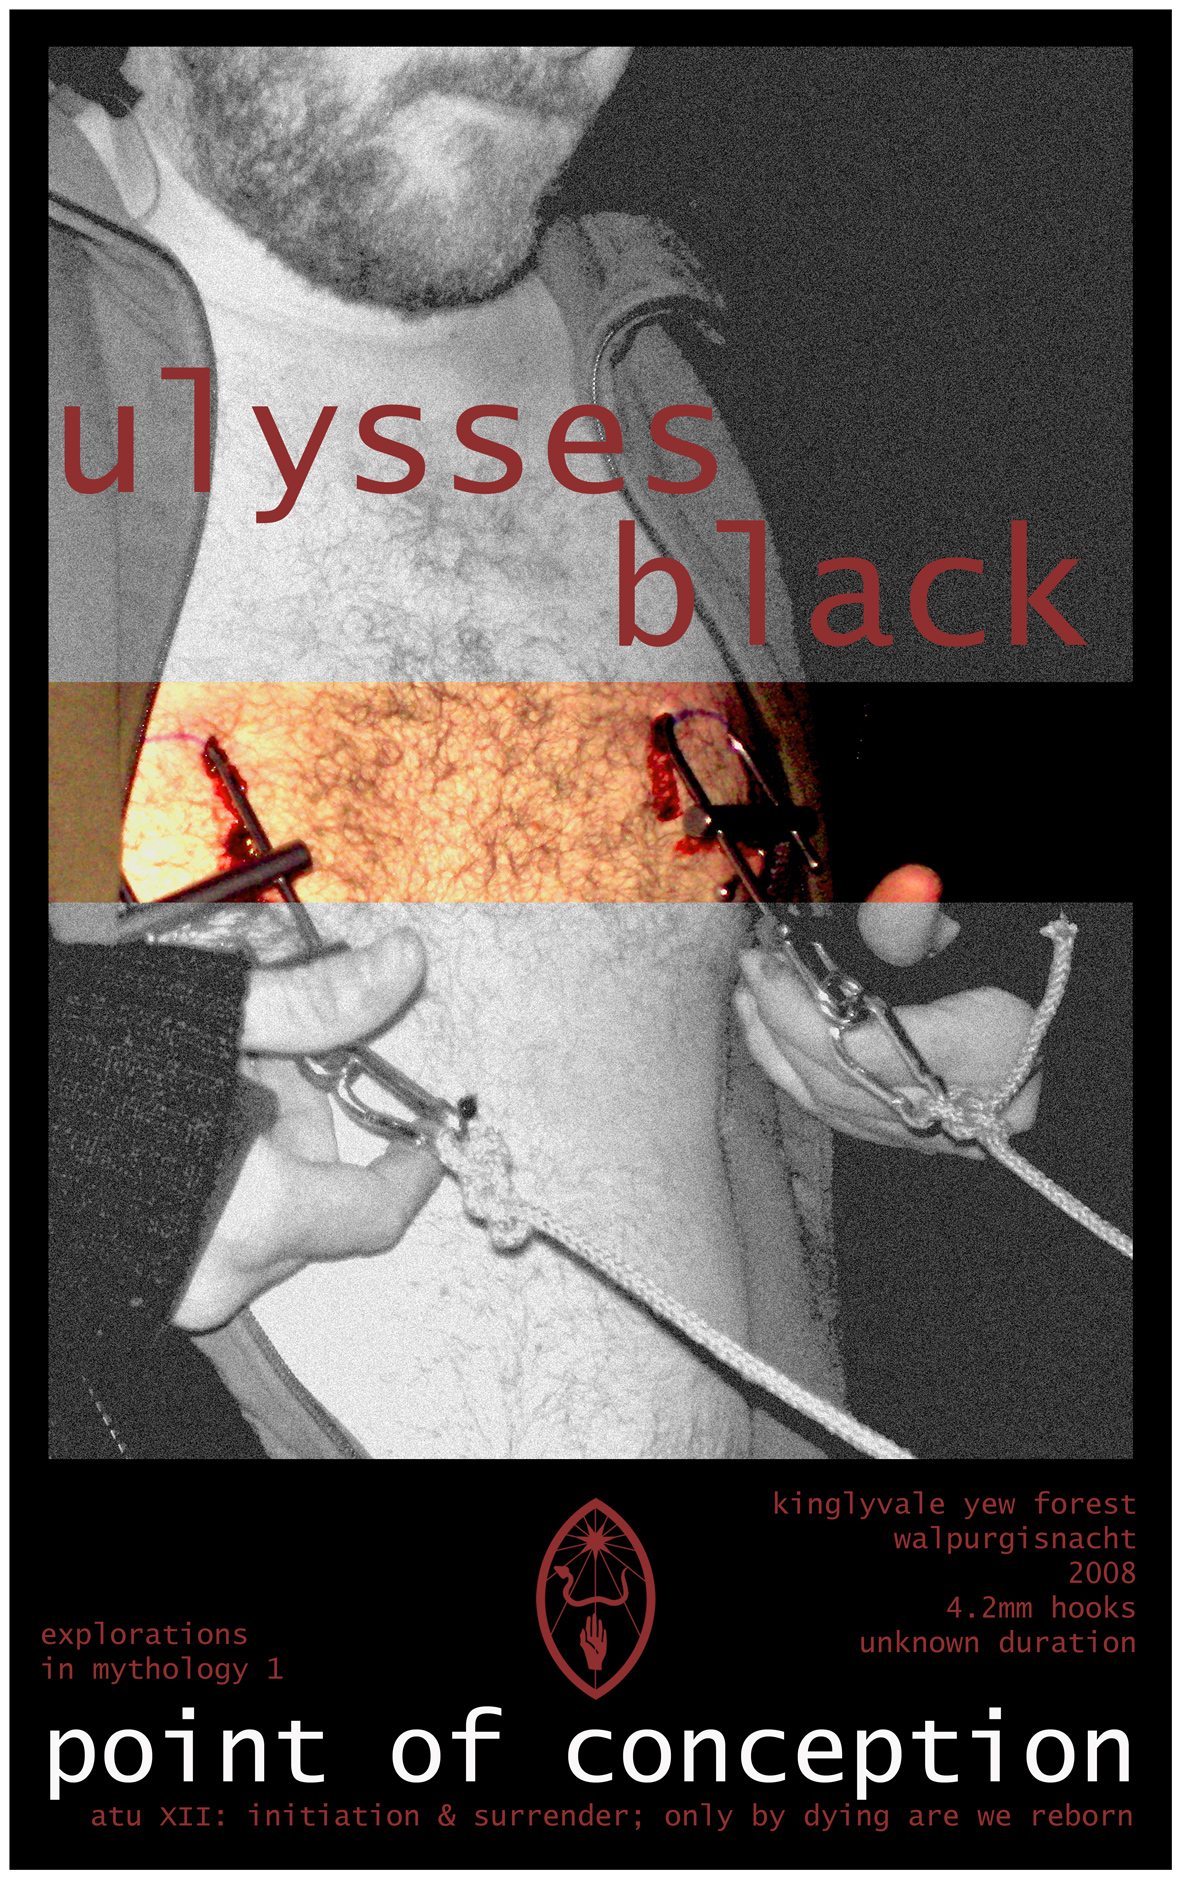 Poster commemorating the start of what would become the Ulysses Black Initiative, with Exploration 1.